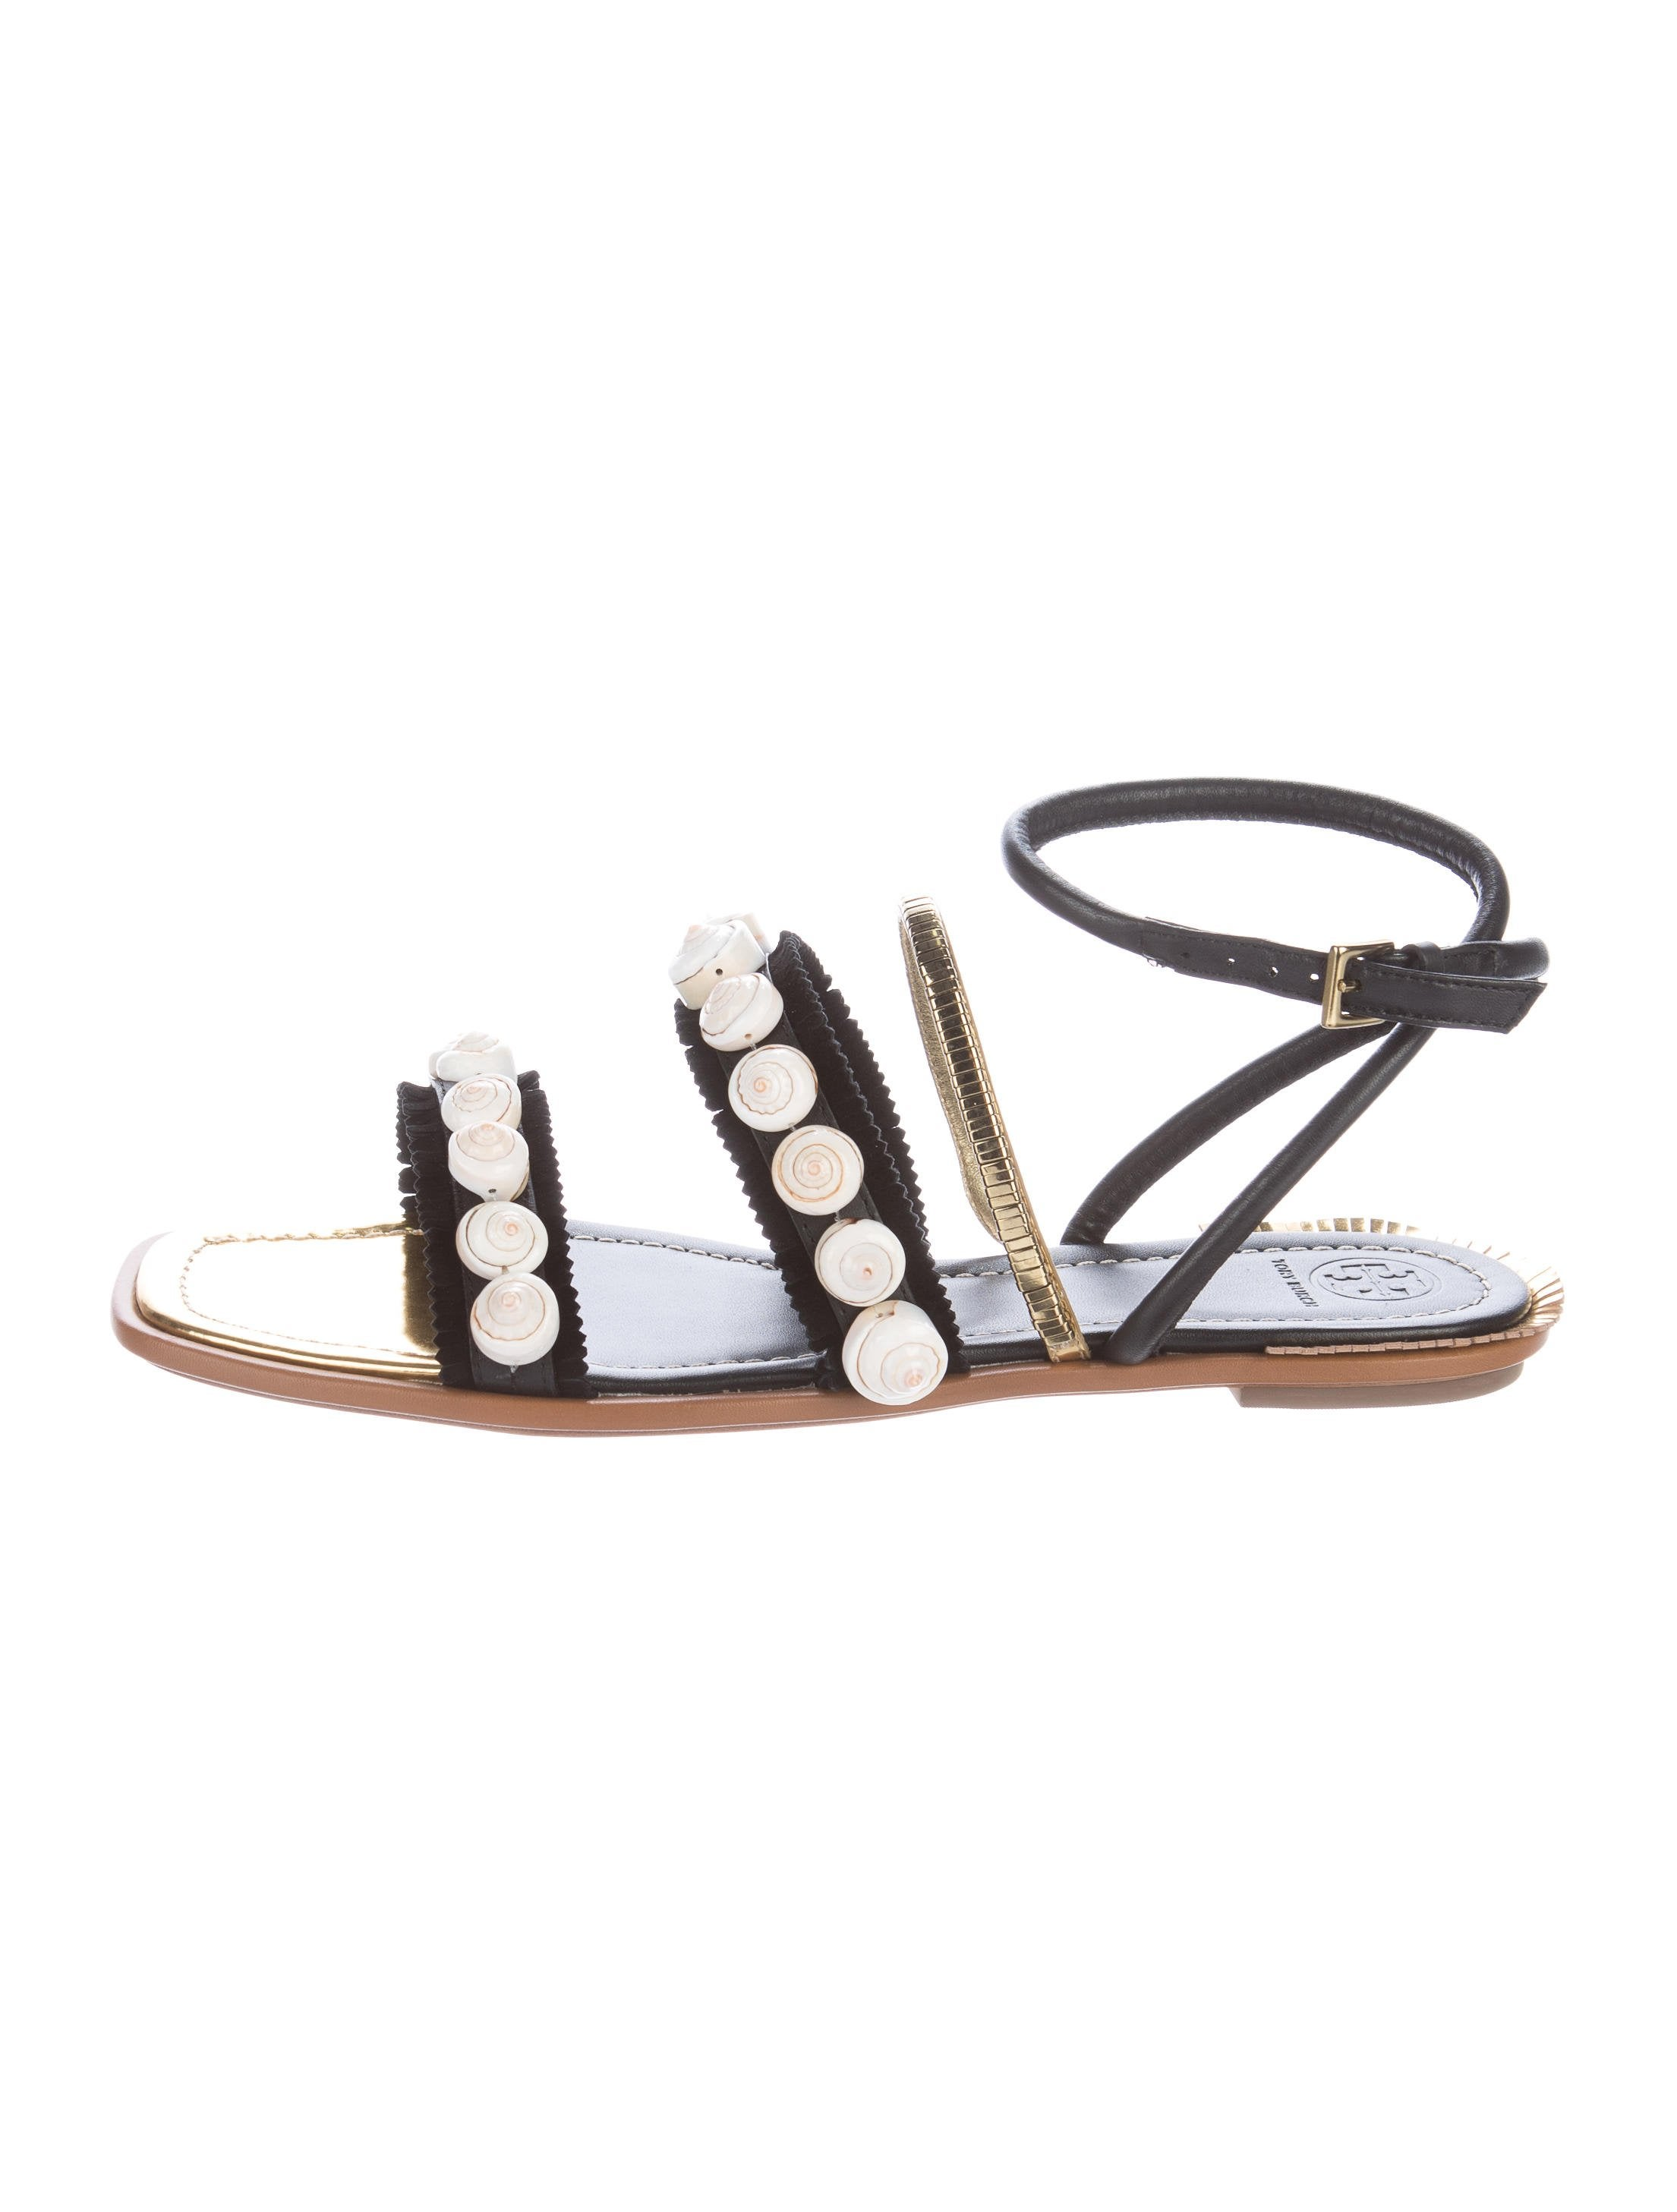 cost cheap price clearance with paypal Tory Burch Sinclair Embellished Sandals w/ Tags low price sale online sast cheap price lowest price for sale dnO3uaUoD